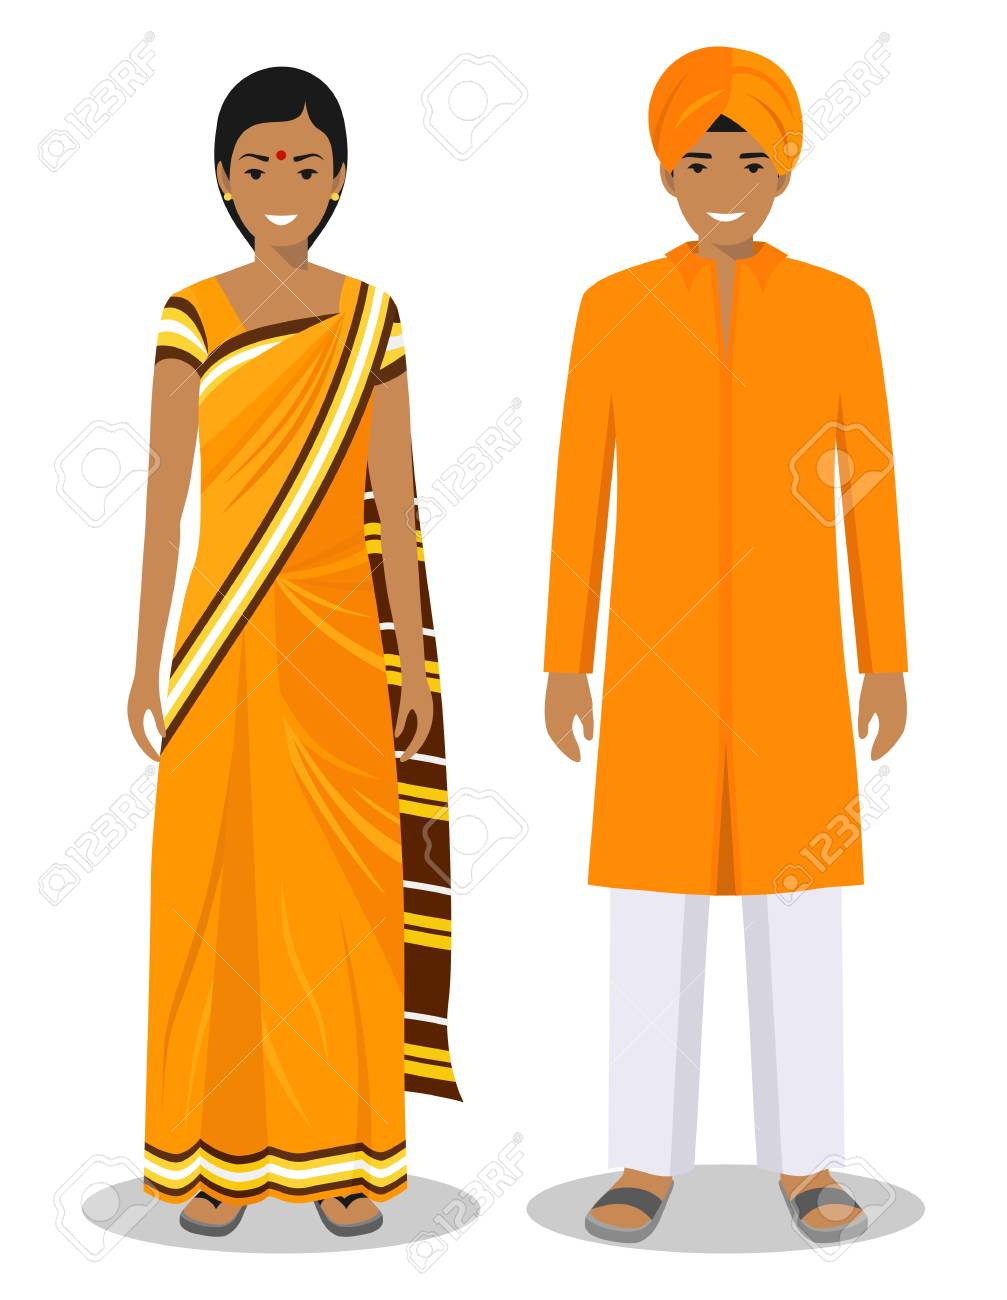 c002082473 Vector illustration. Set of standing together indian man and woman in the  traditional clothing isolated on white background